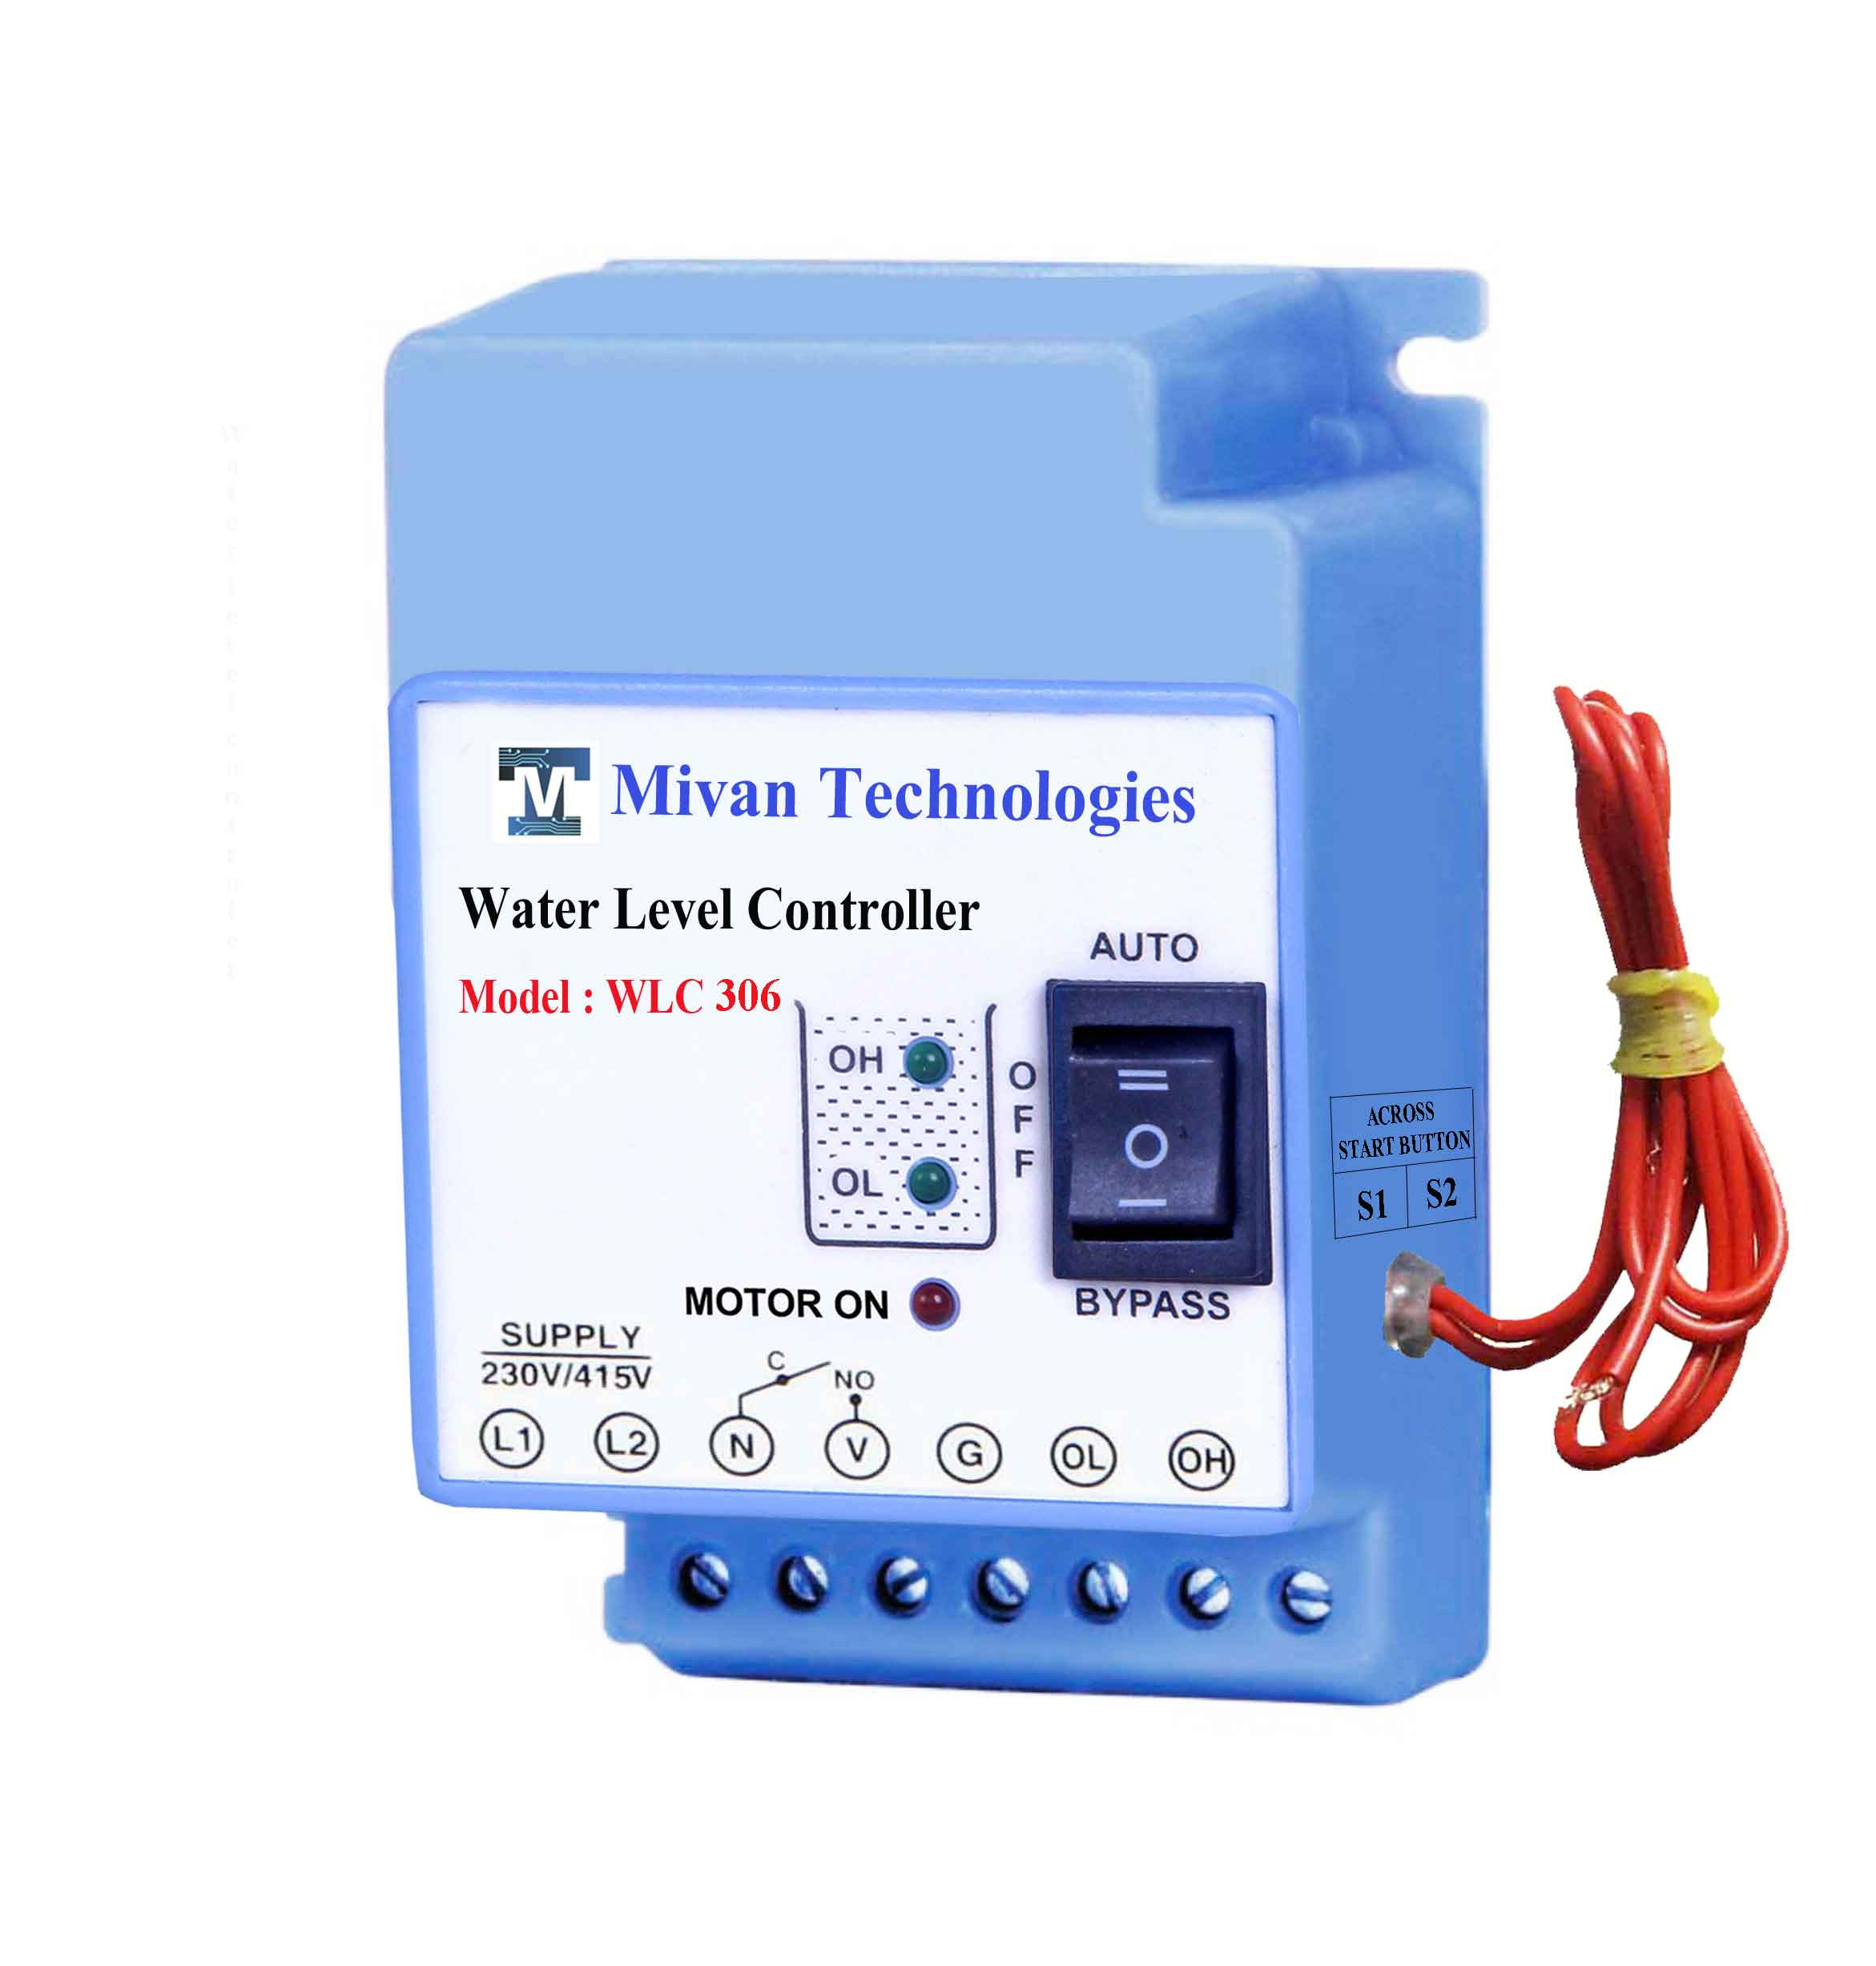 WLC 306 Water level controller for 3 phase motor and submersible pump with 3 sensor